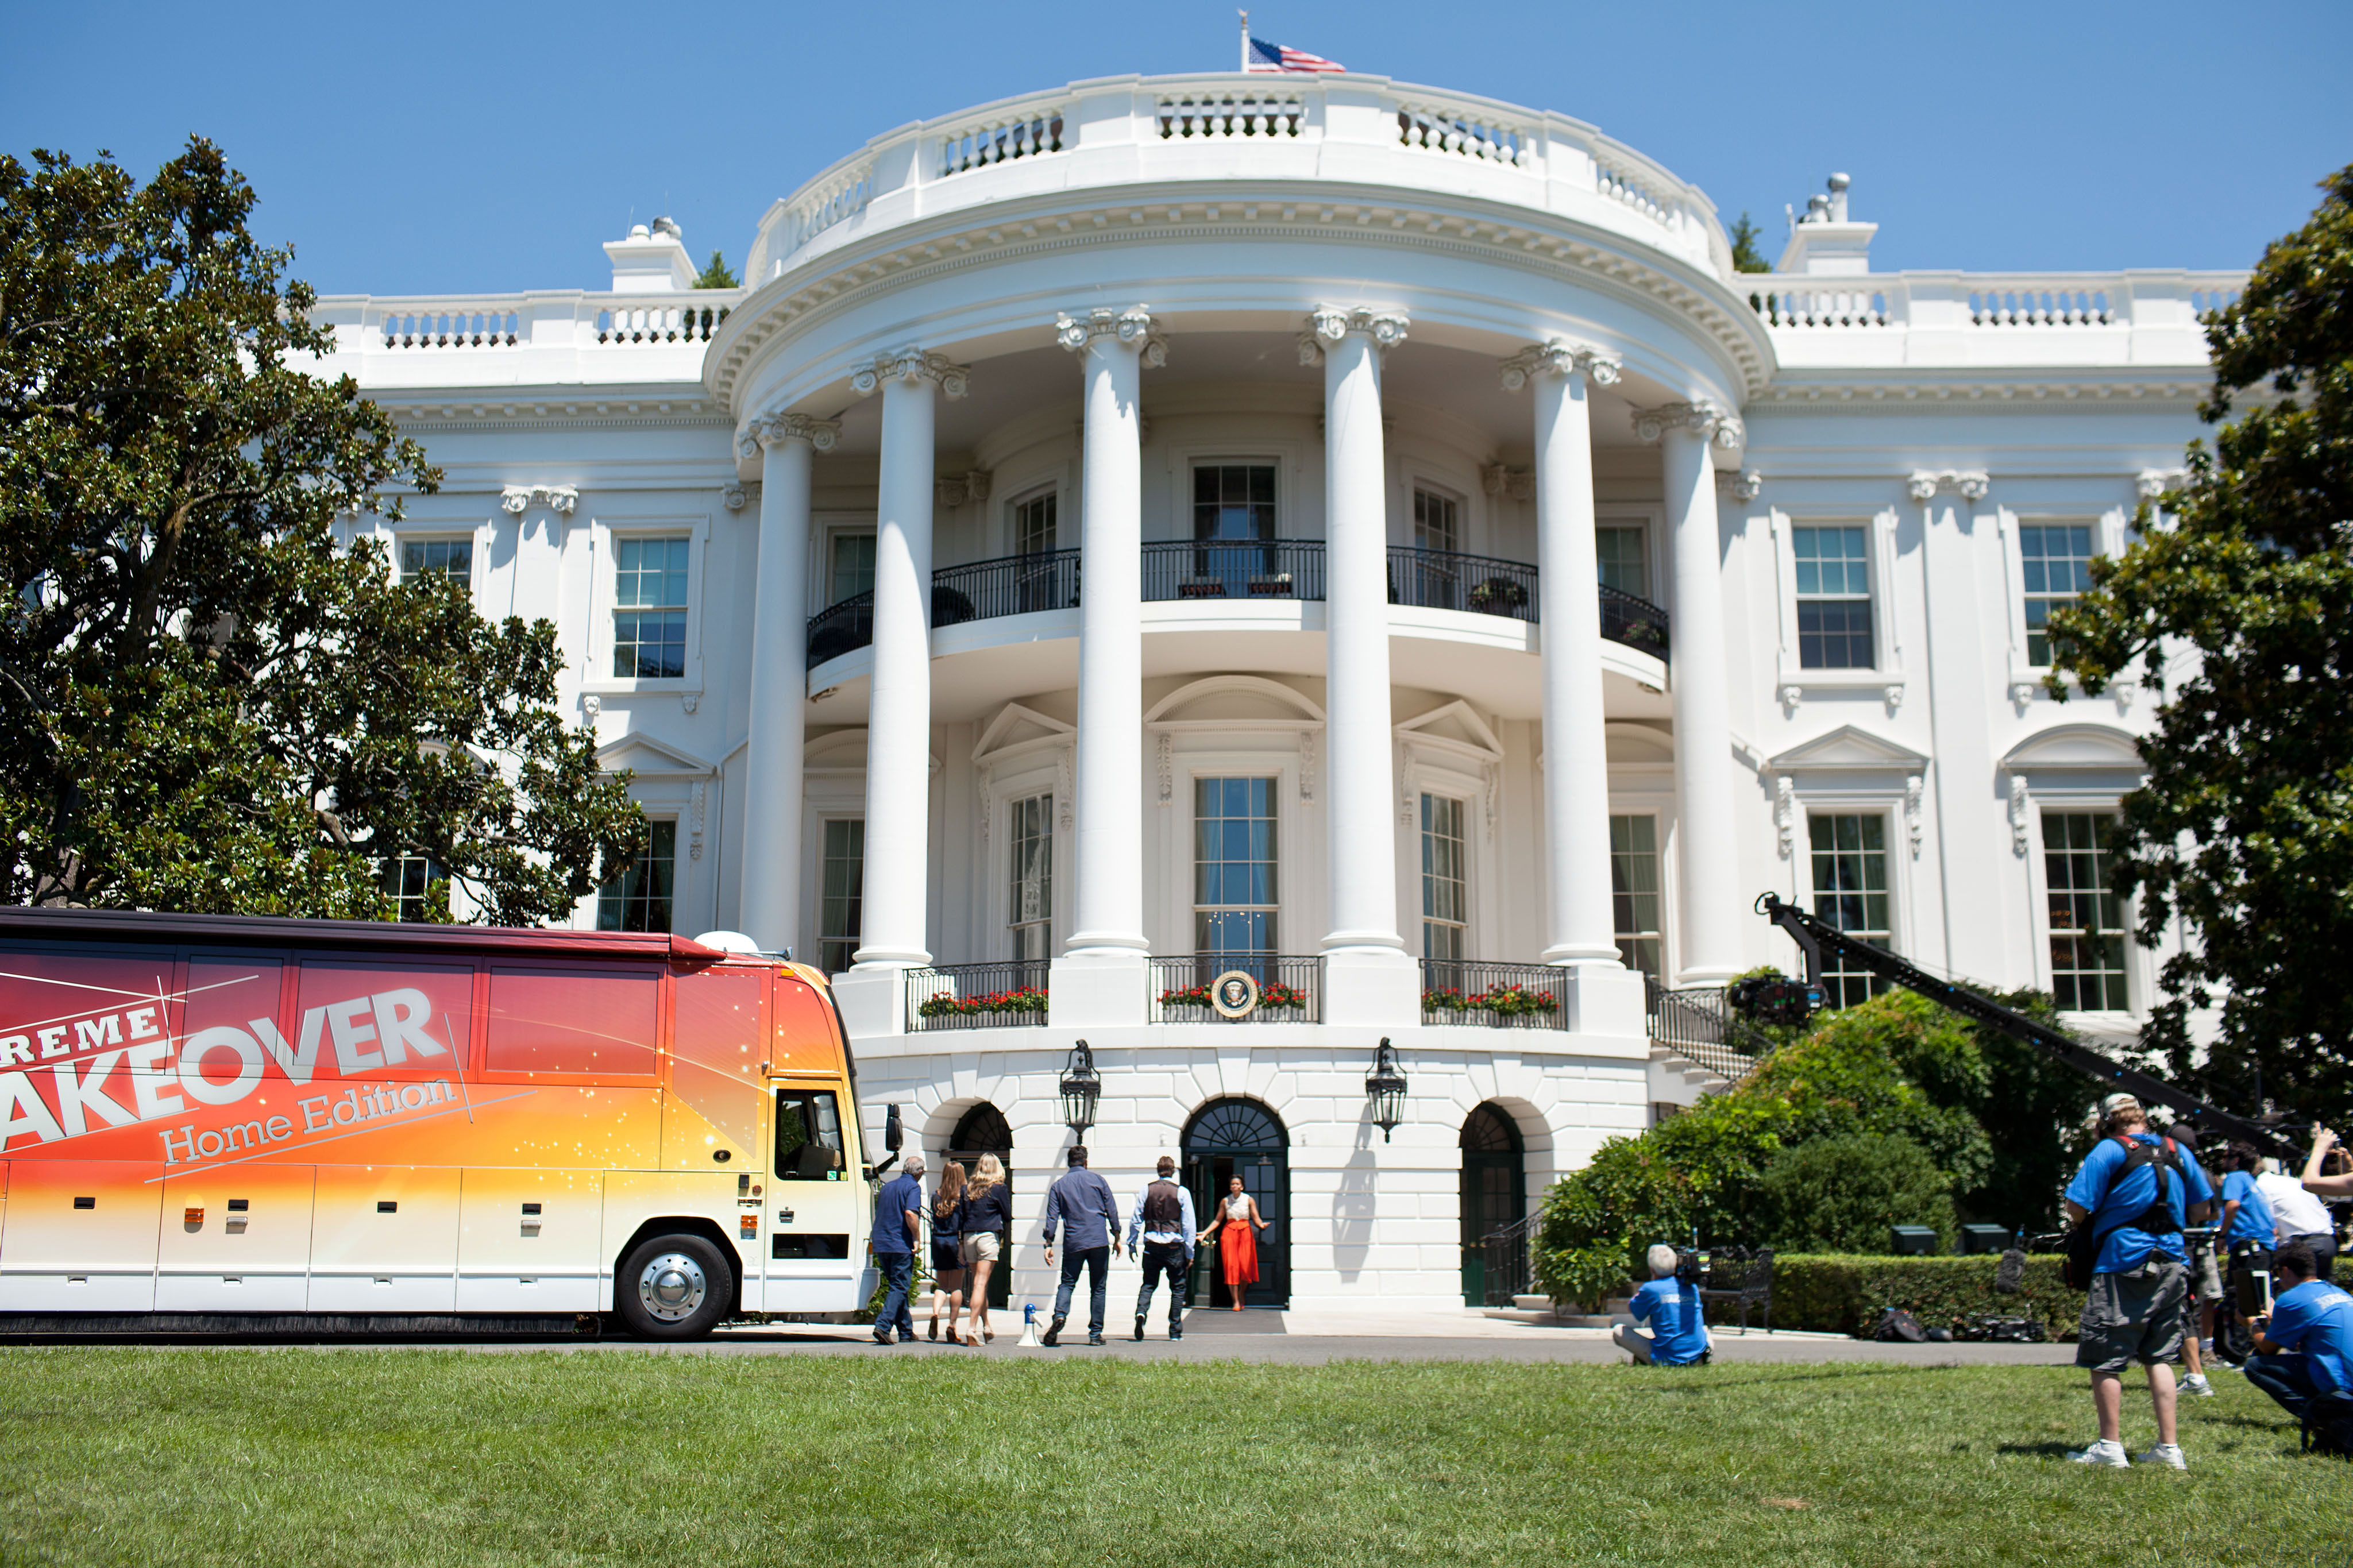 of an Extreme Makeover Home Edition episode, White House, 2011.jpg